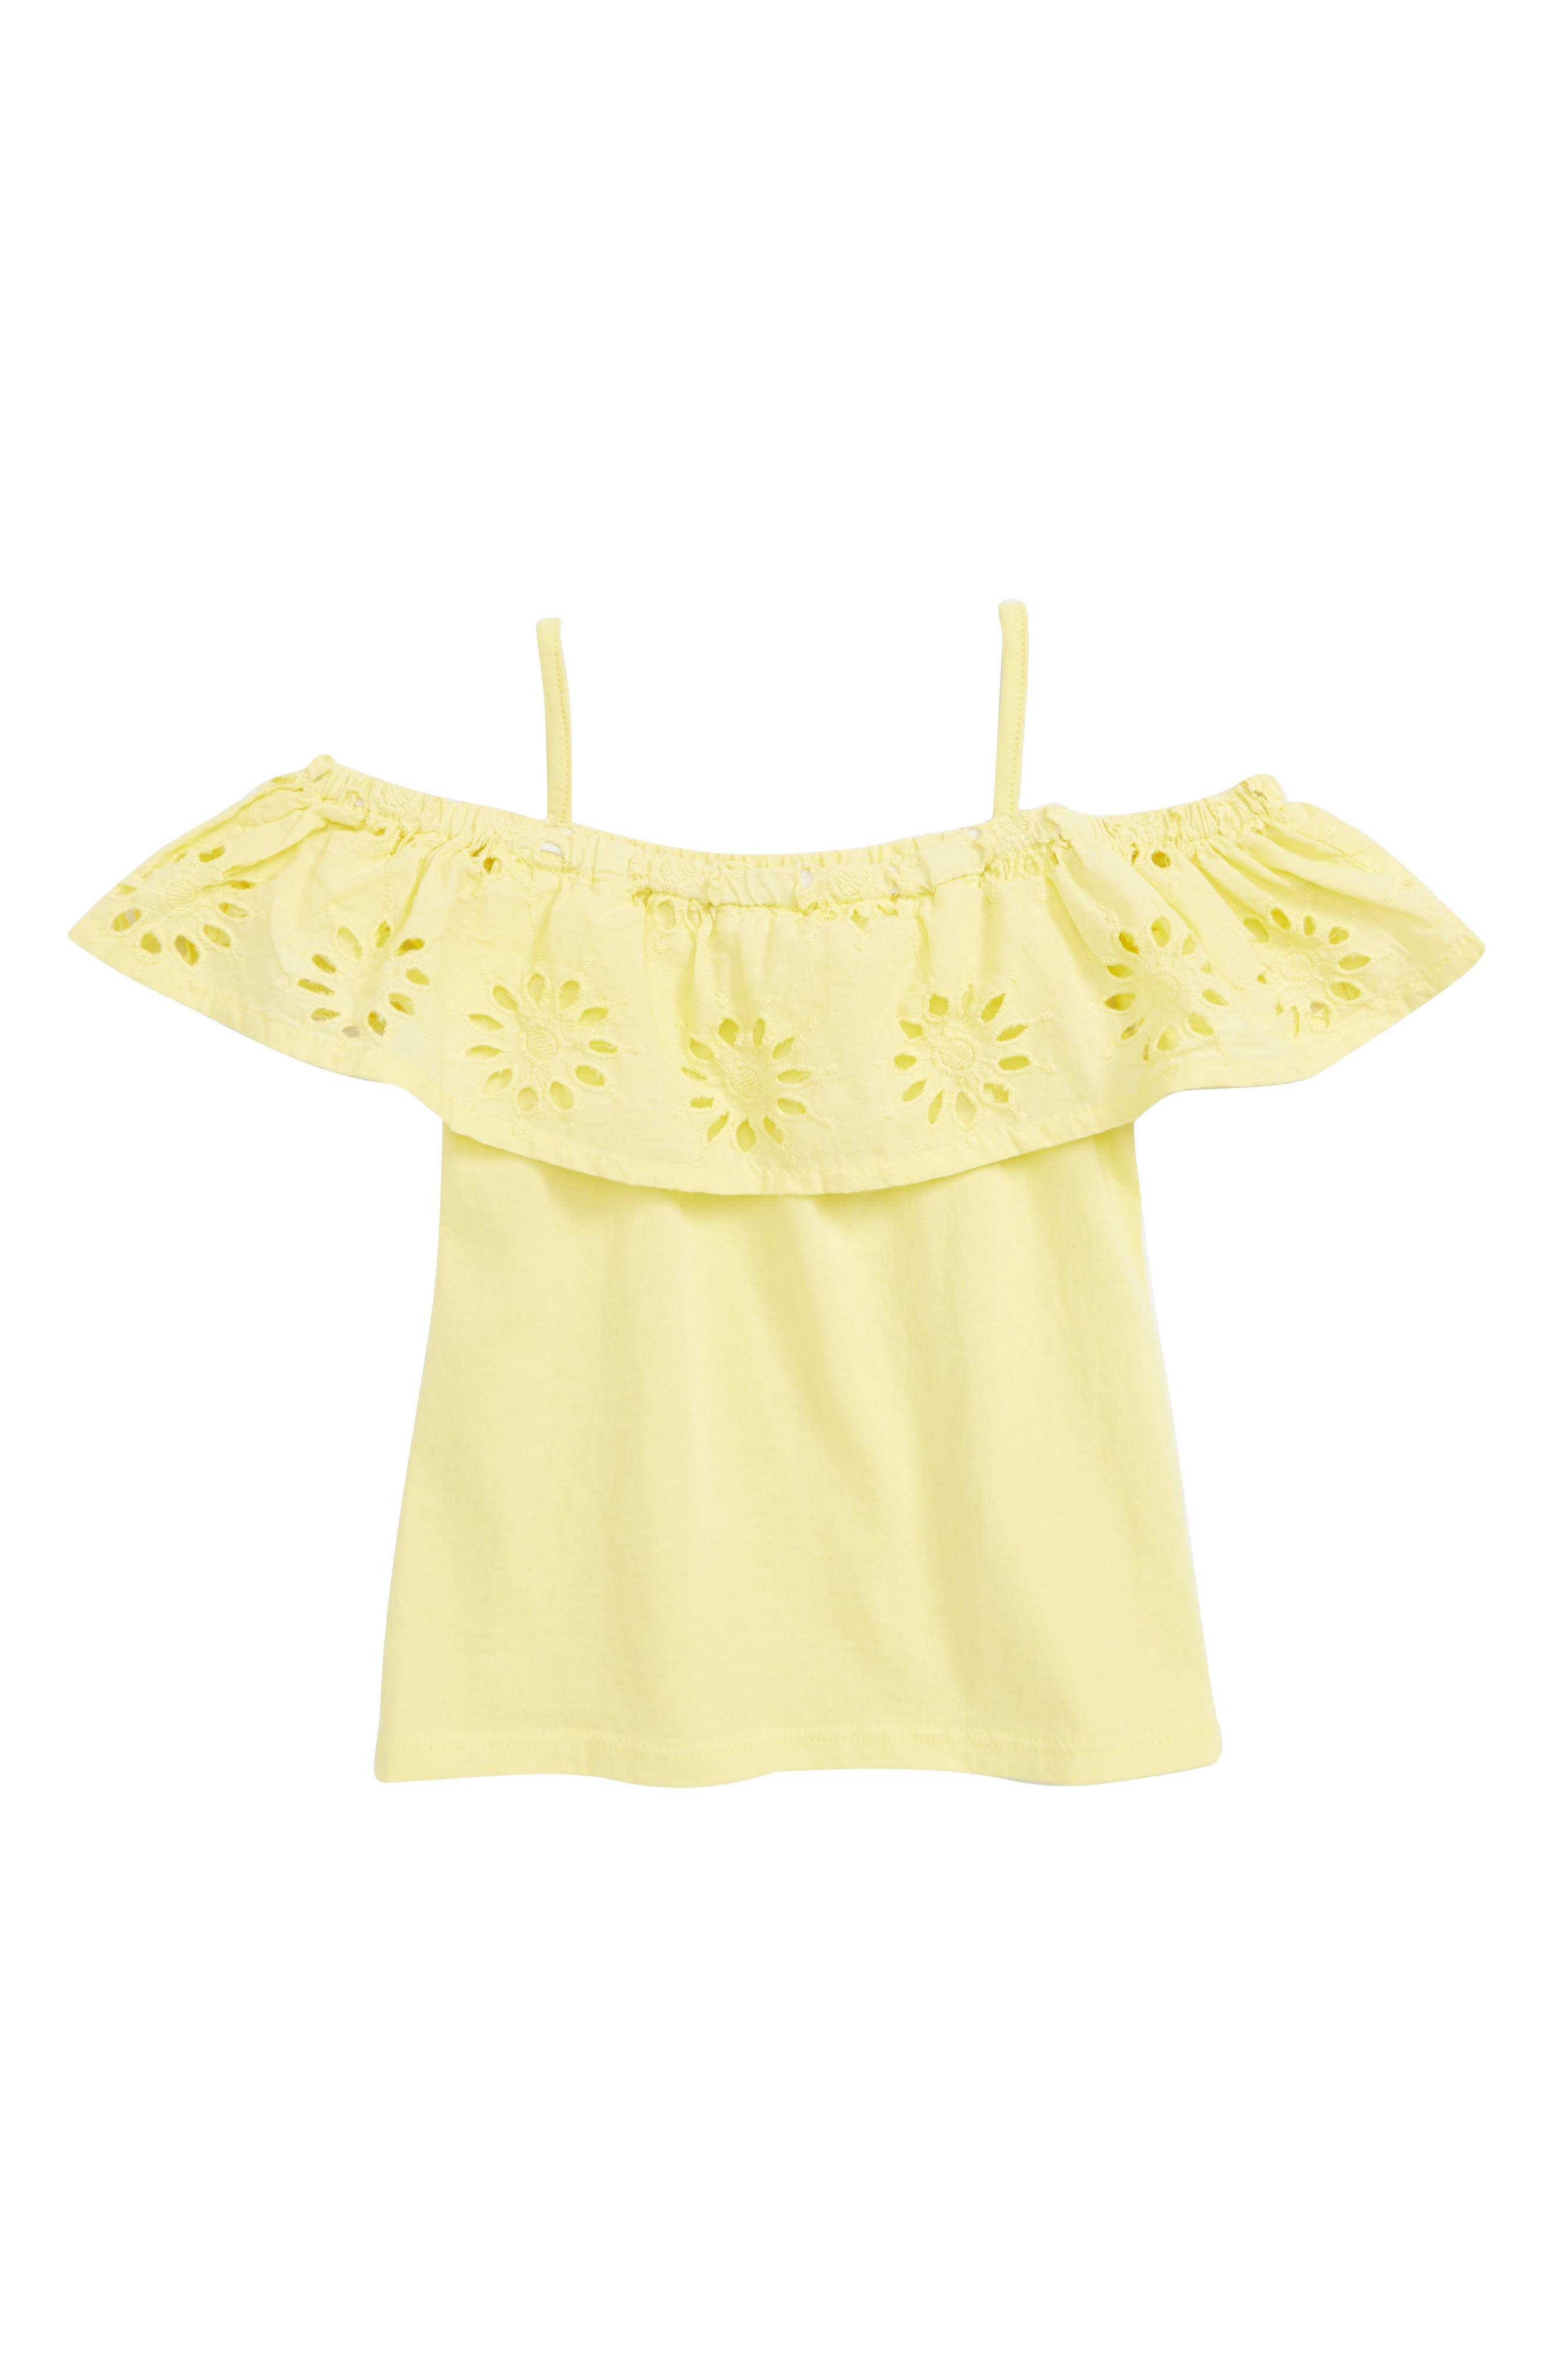 PEEK AREN'T YOU CURIOUS Raelyn Embroidered Top, Main, color, YELLOW